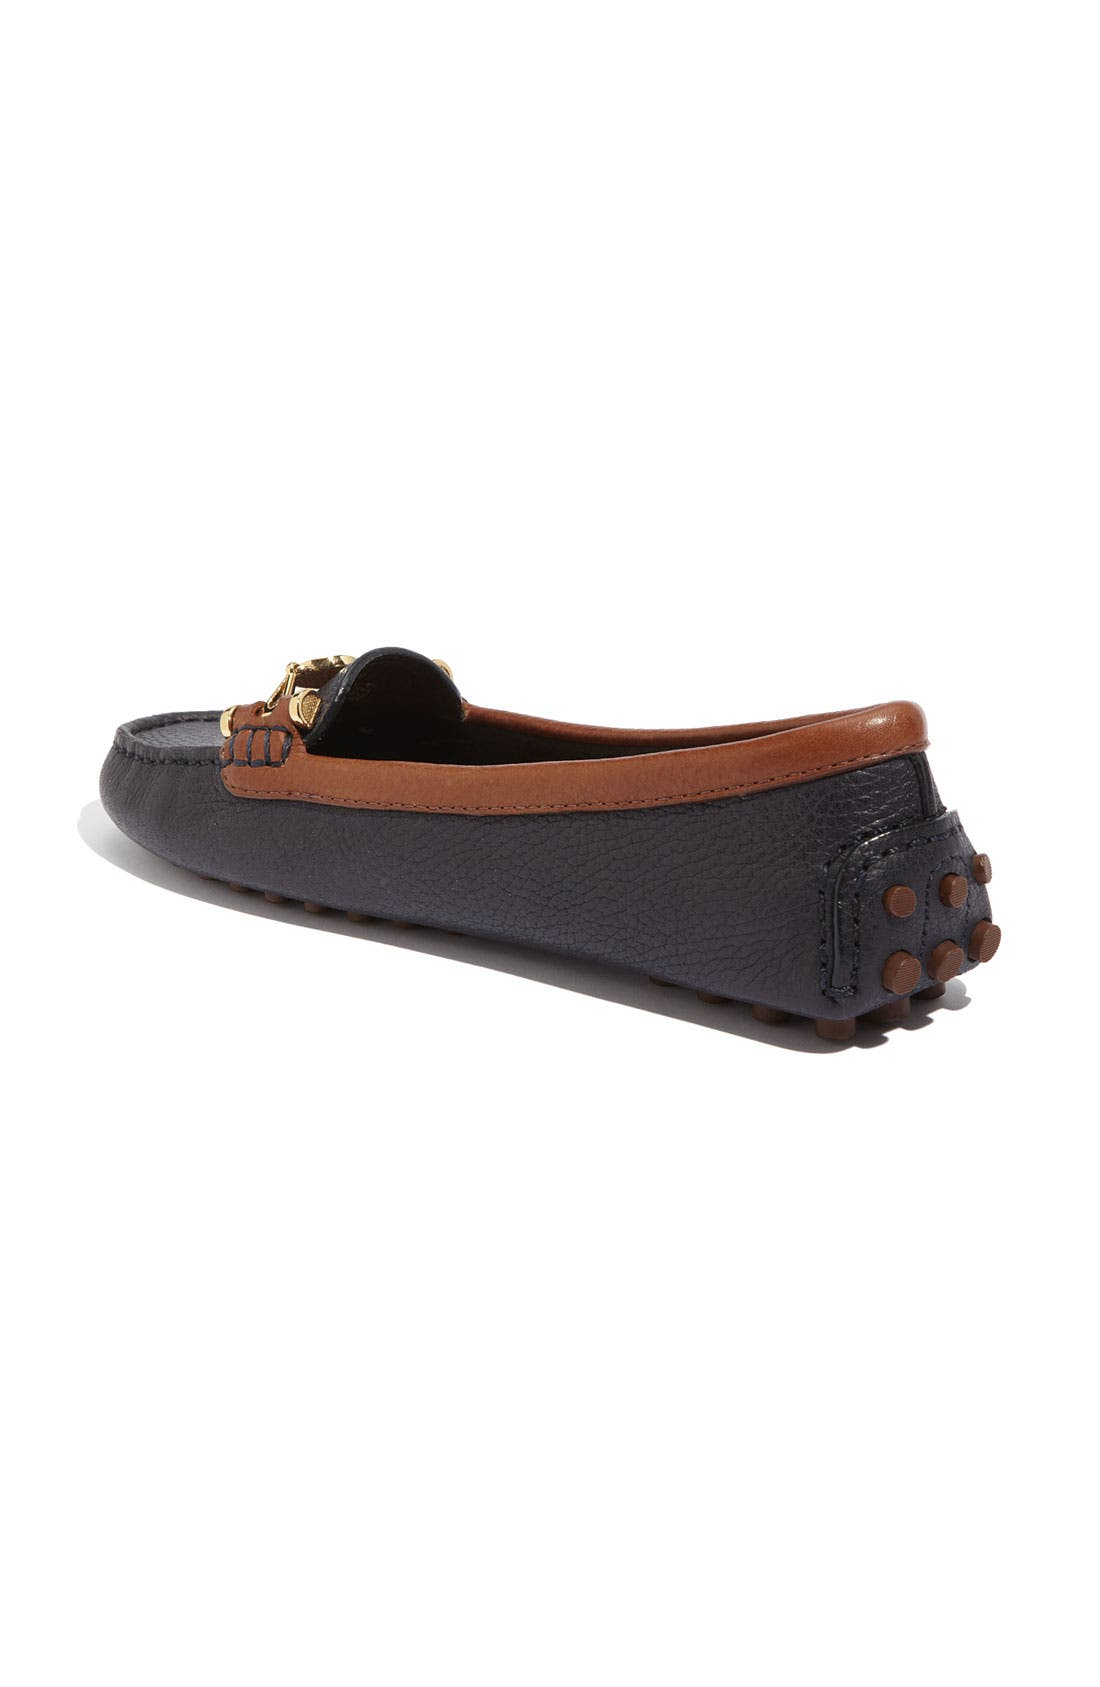 Alternate Image 2  - Tory Burch 'Daria' Driving Moccasin